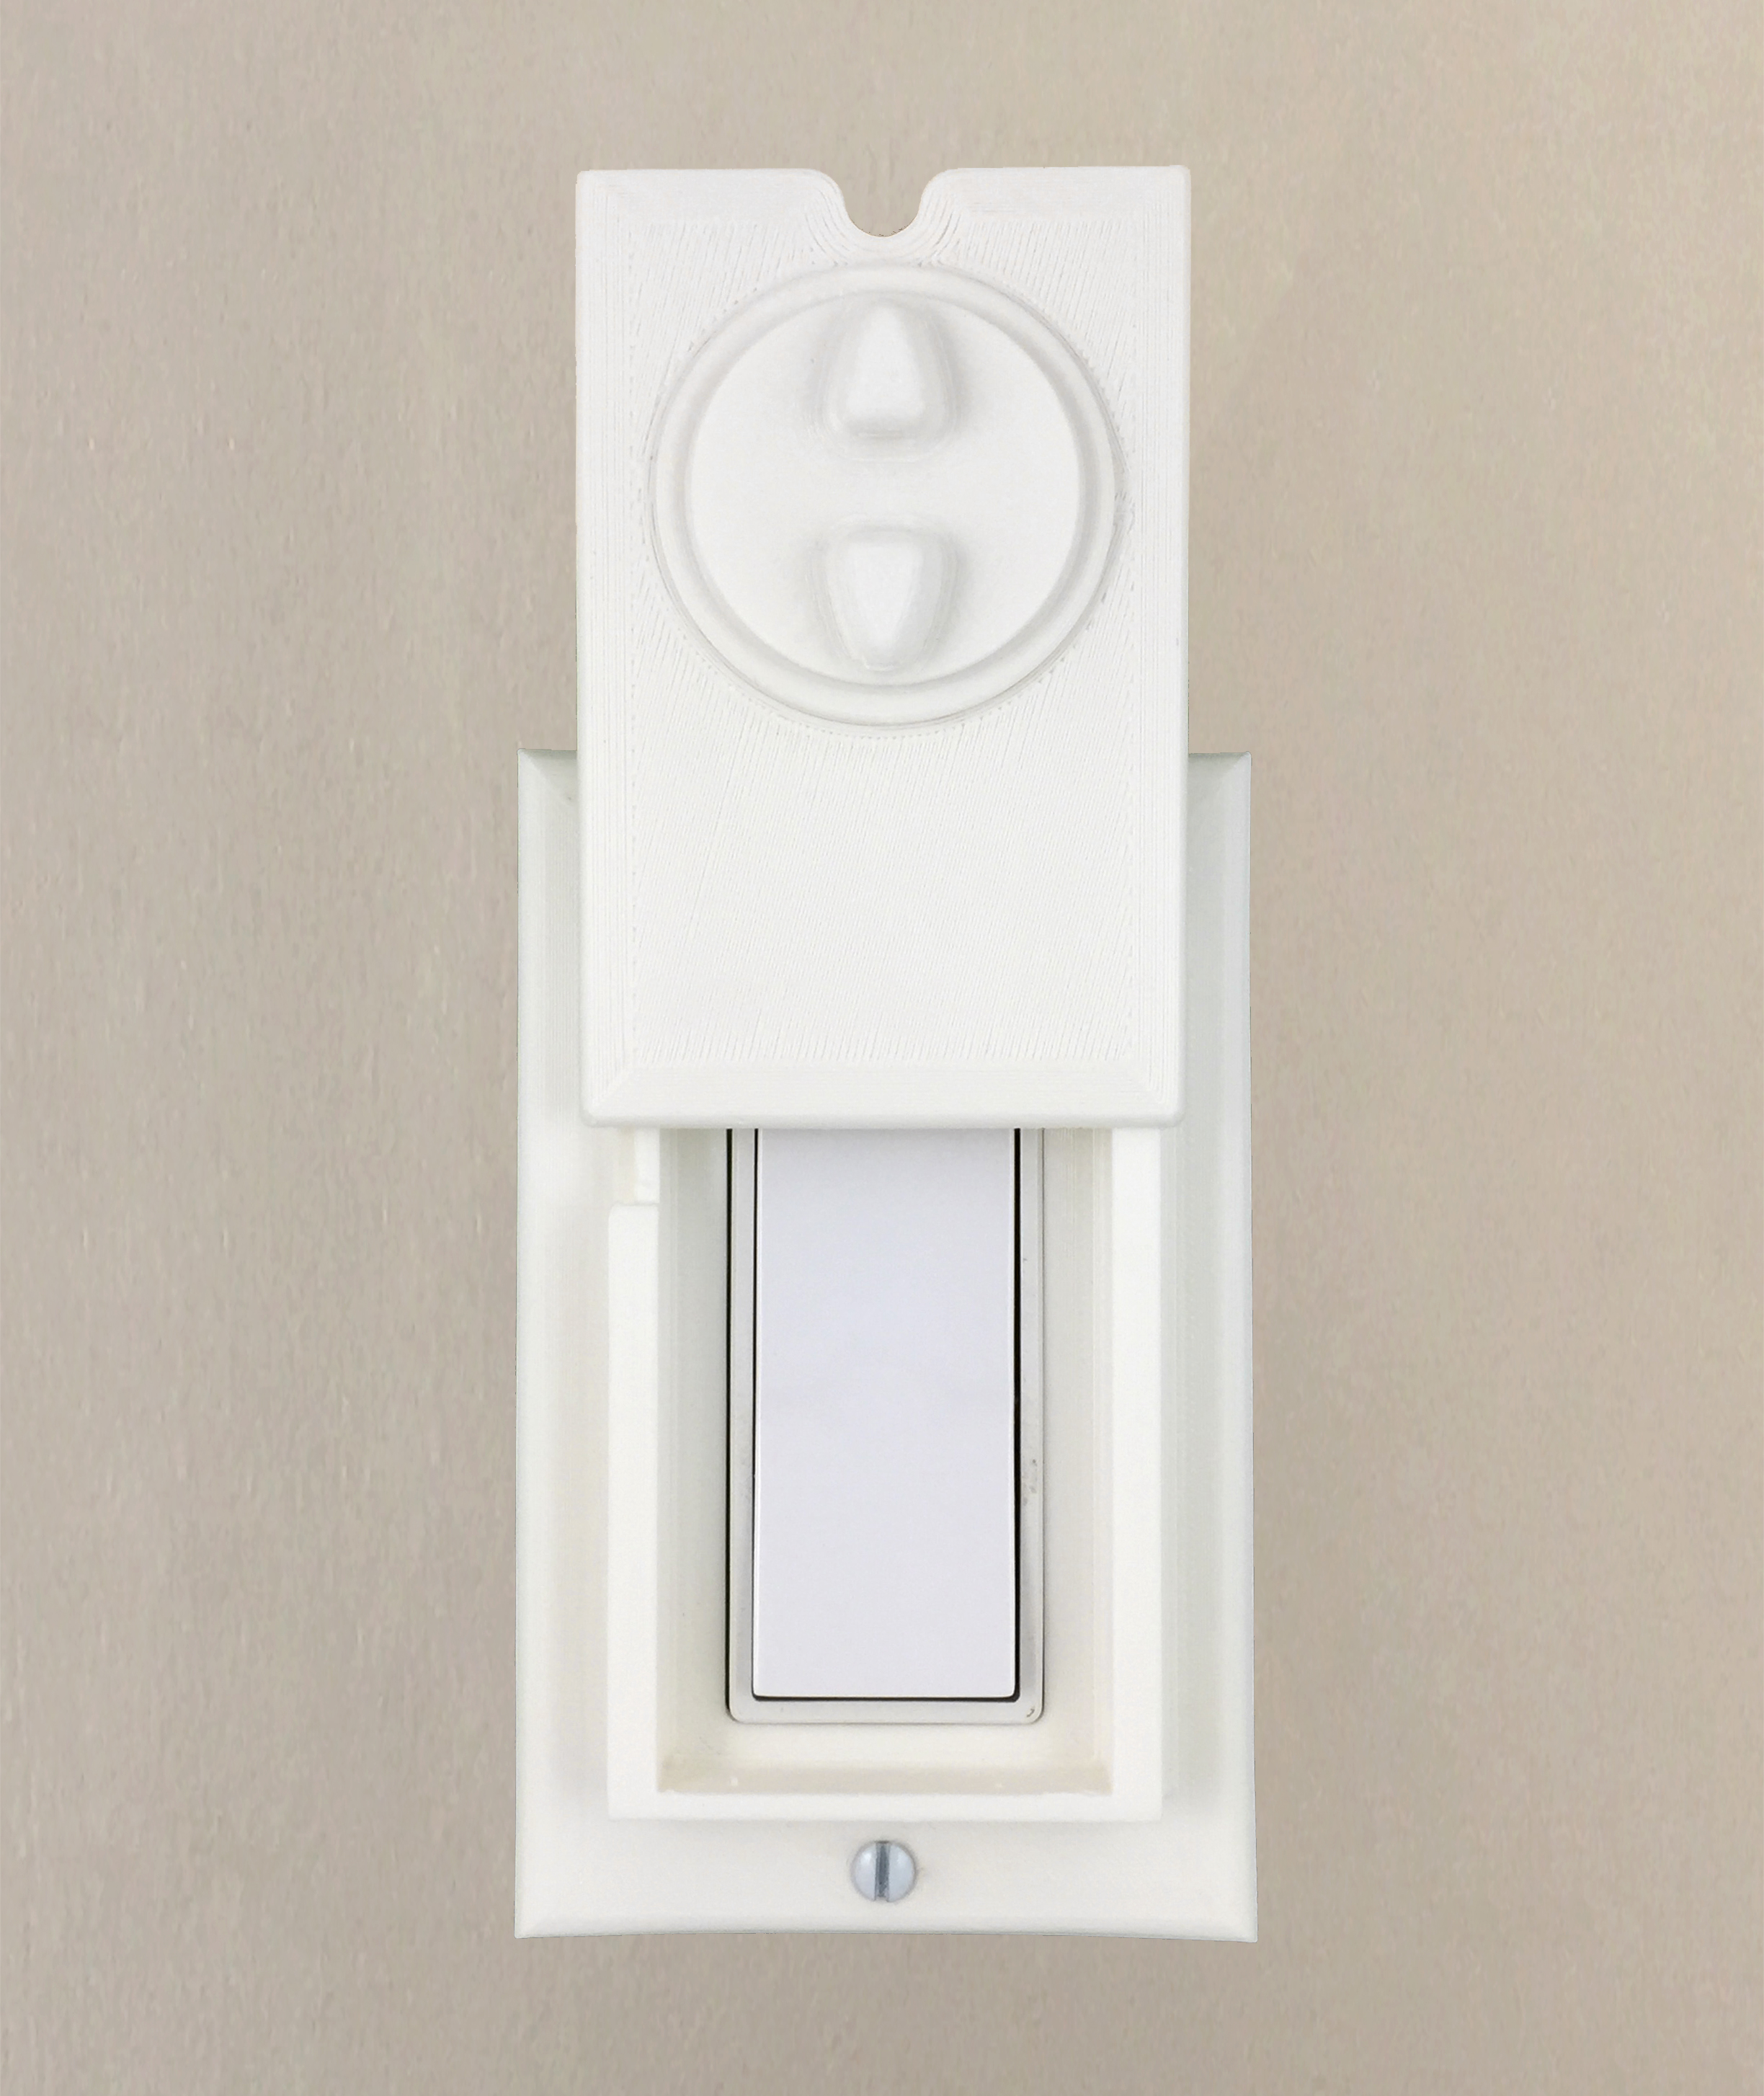 HomeStar Safety Light Switch Guard for Single Switch (Prototype)